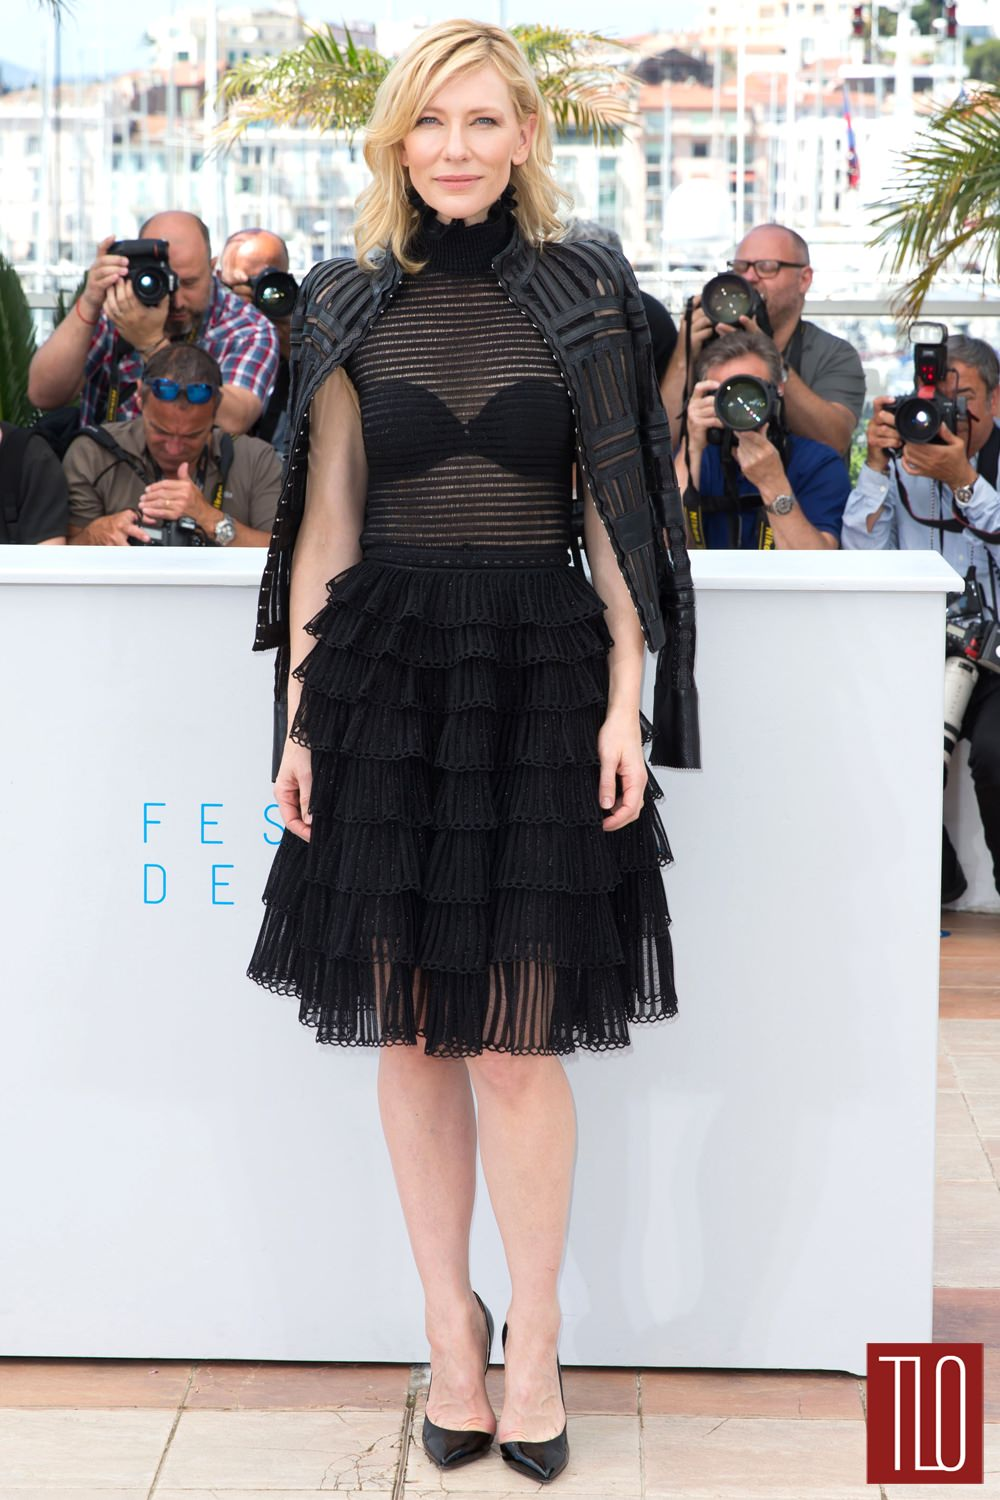 Cate-Blanchett-Cannes-Fil-Festival-2015-Movie-Photocall-Red-Carpet-Alexander-McQueen-Tom-Lorenzo-Site-TLO (1)